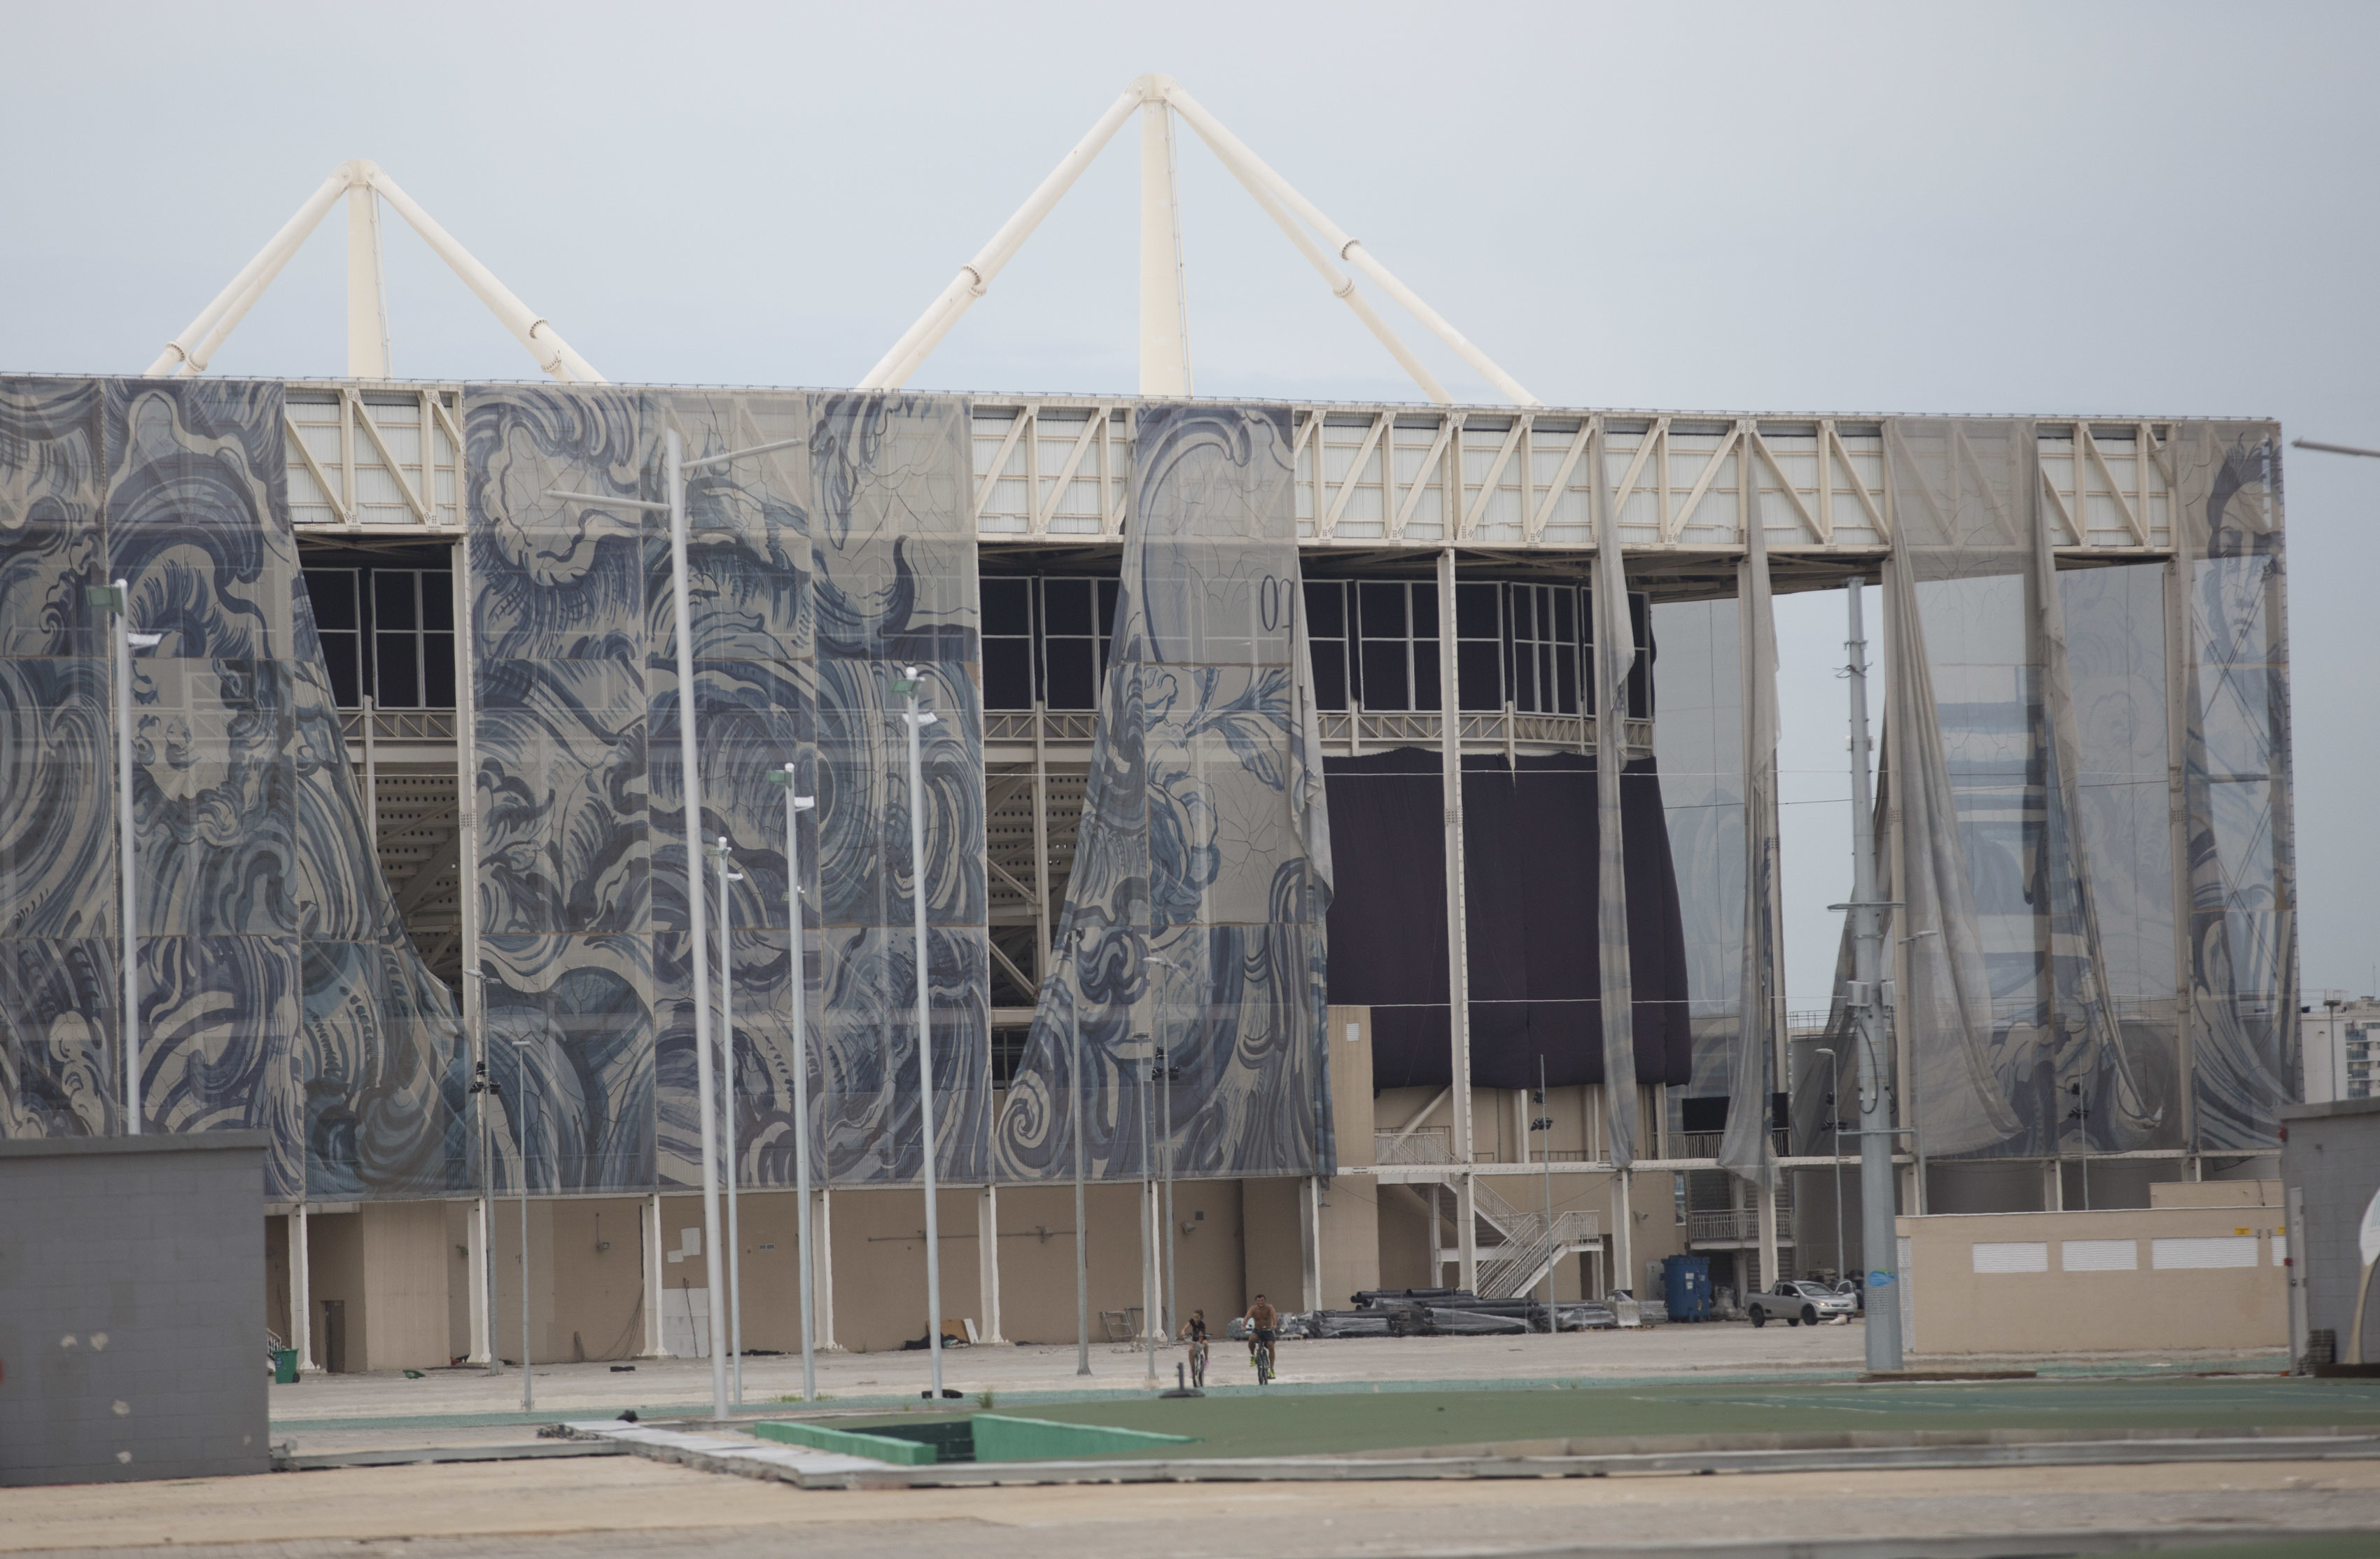 FILE - This Feb. 4, 2017 file photo shows translucent tapestries created by Brazilian artist Adriana Varejao, falling from the exterior of Olympic Aquatic stadium inside Olympic Park in Rio de Janeiro, Brazil. Many of the Rio Olympics venues are empty, bo